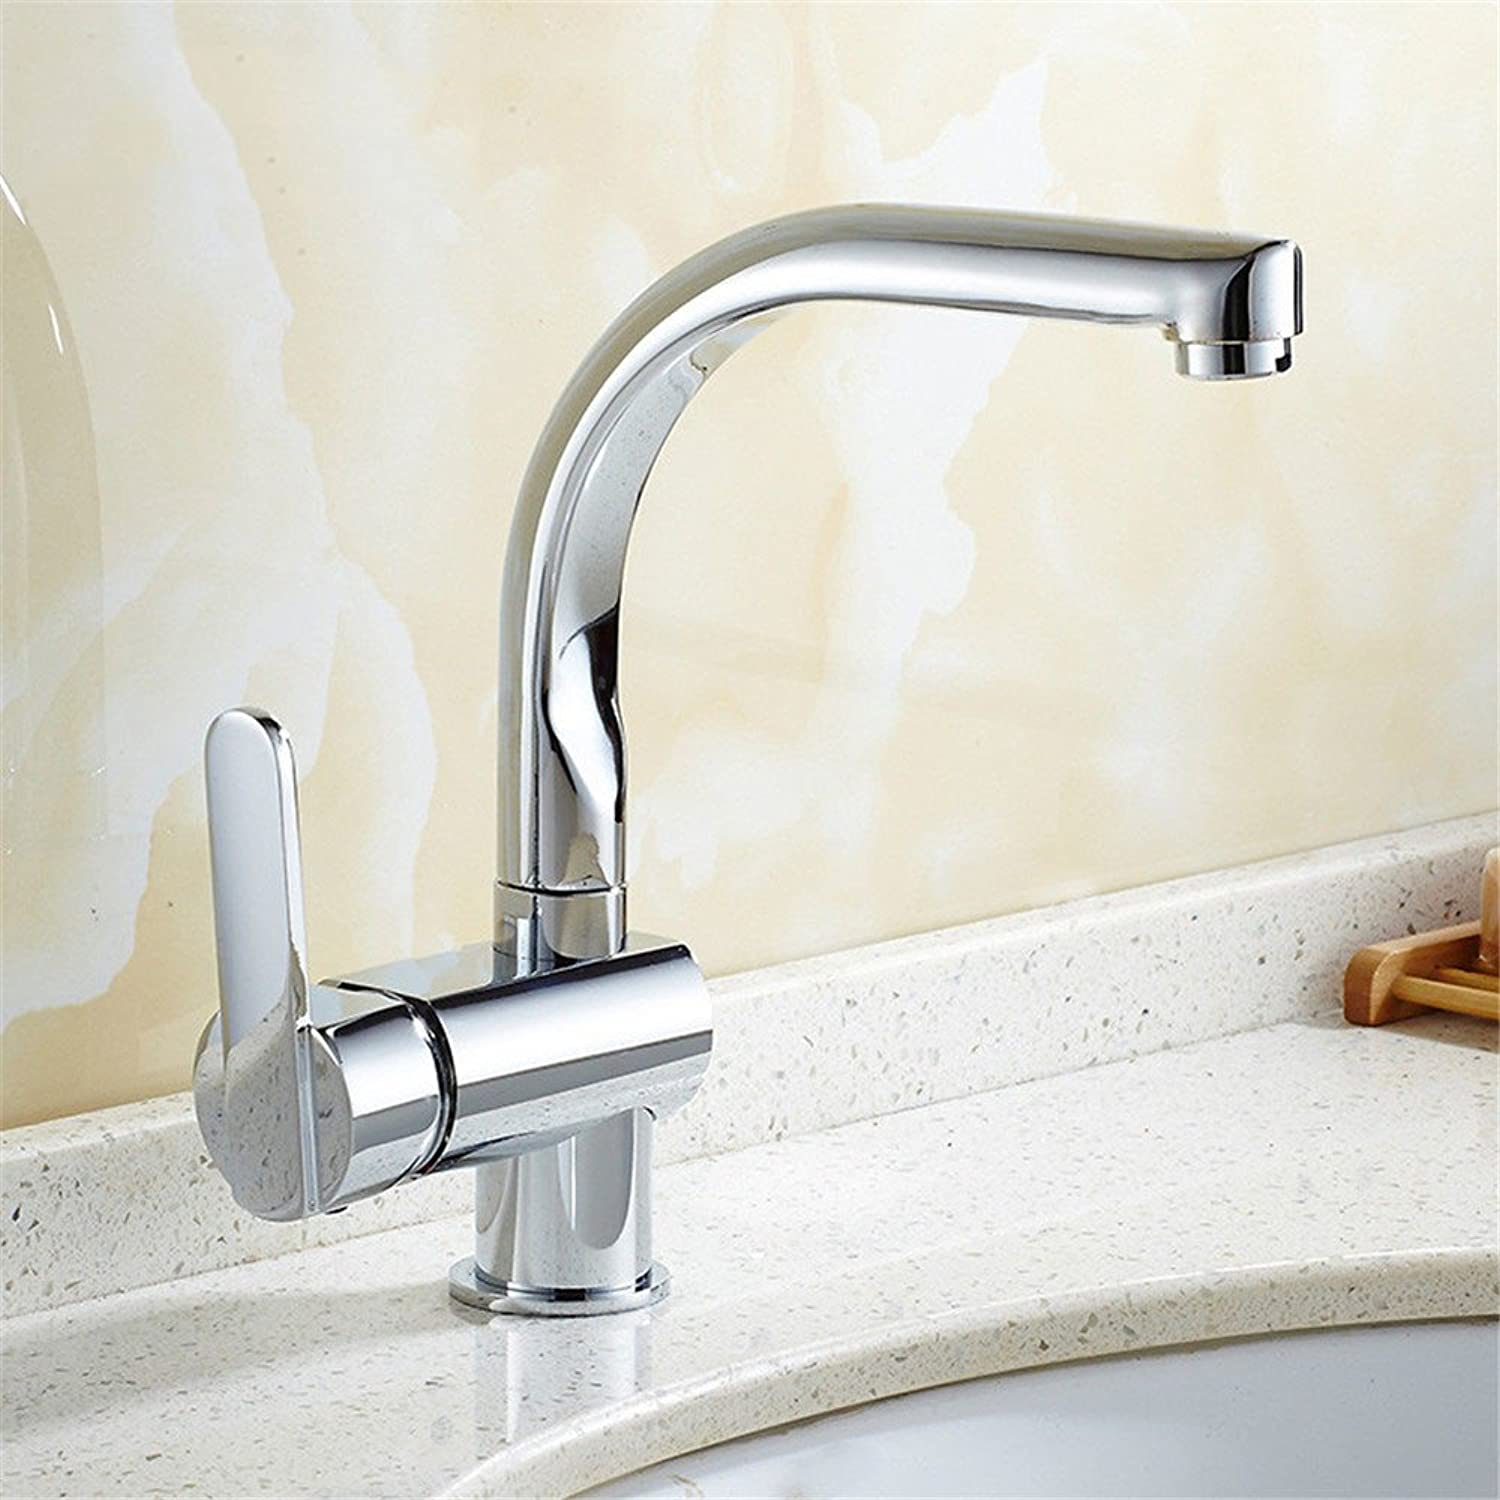 Hlluya Professional Sink Mixer Tap Kitchen Faucet The bathroom basin sink faucets, taps